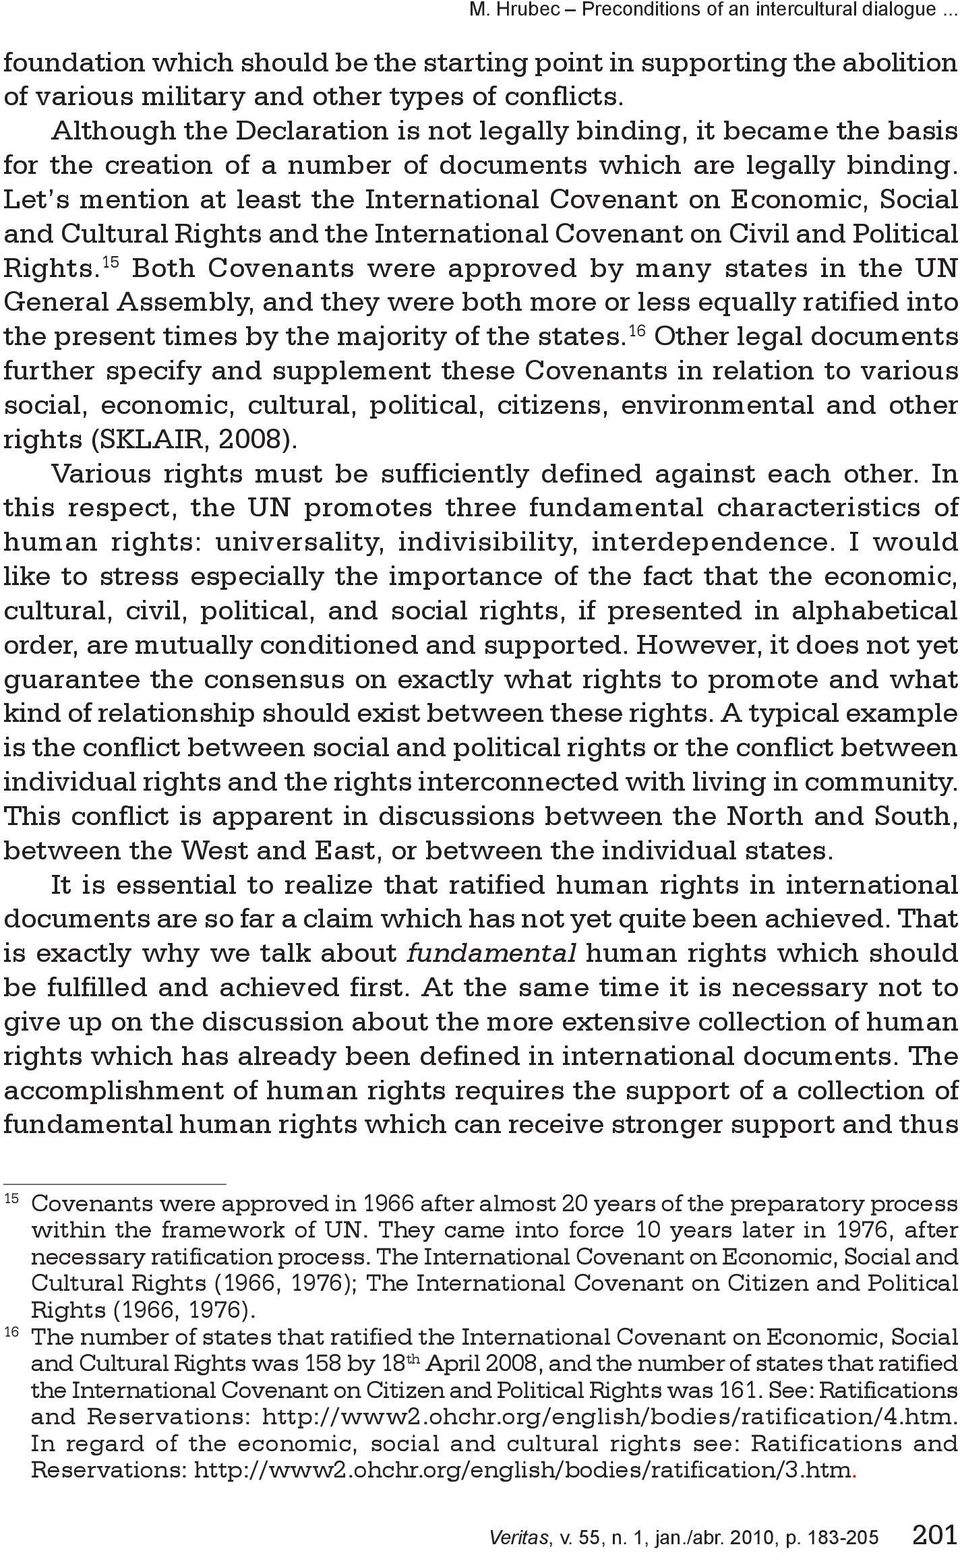 Let s mention at least the International Covenant on Economic, Social and Cultural Rights and the International Covenant on Civil and Political Rights.